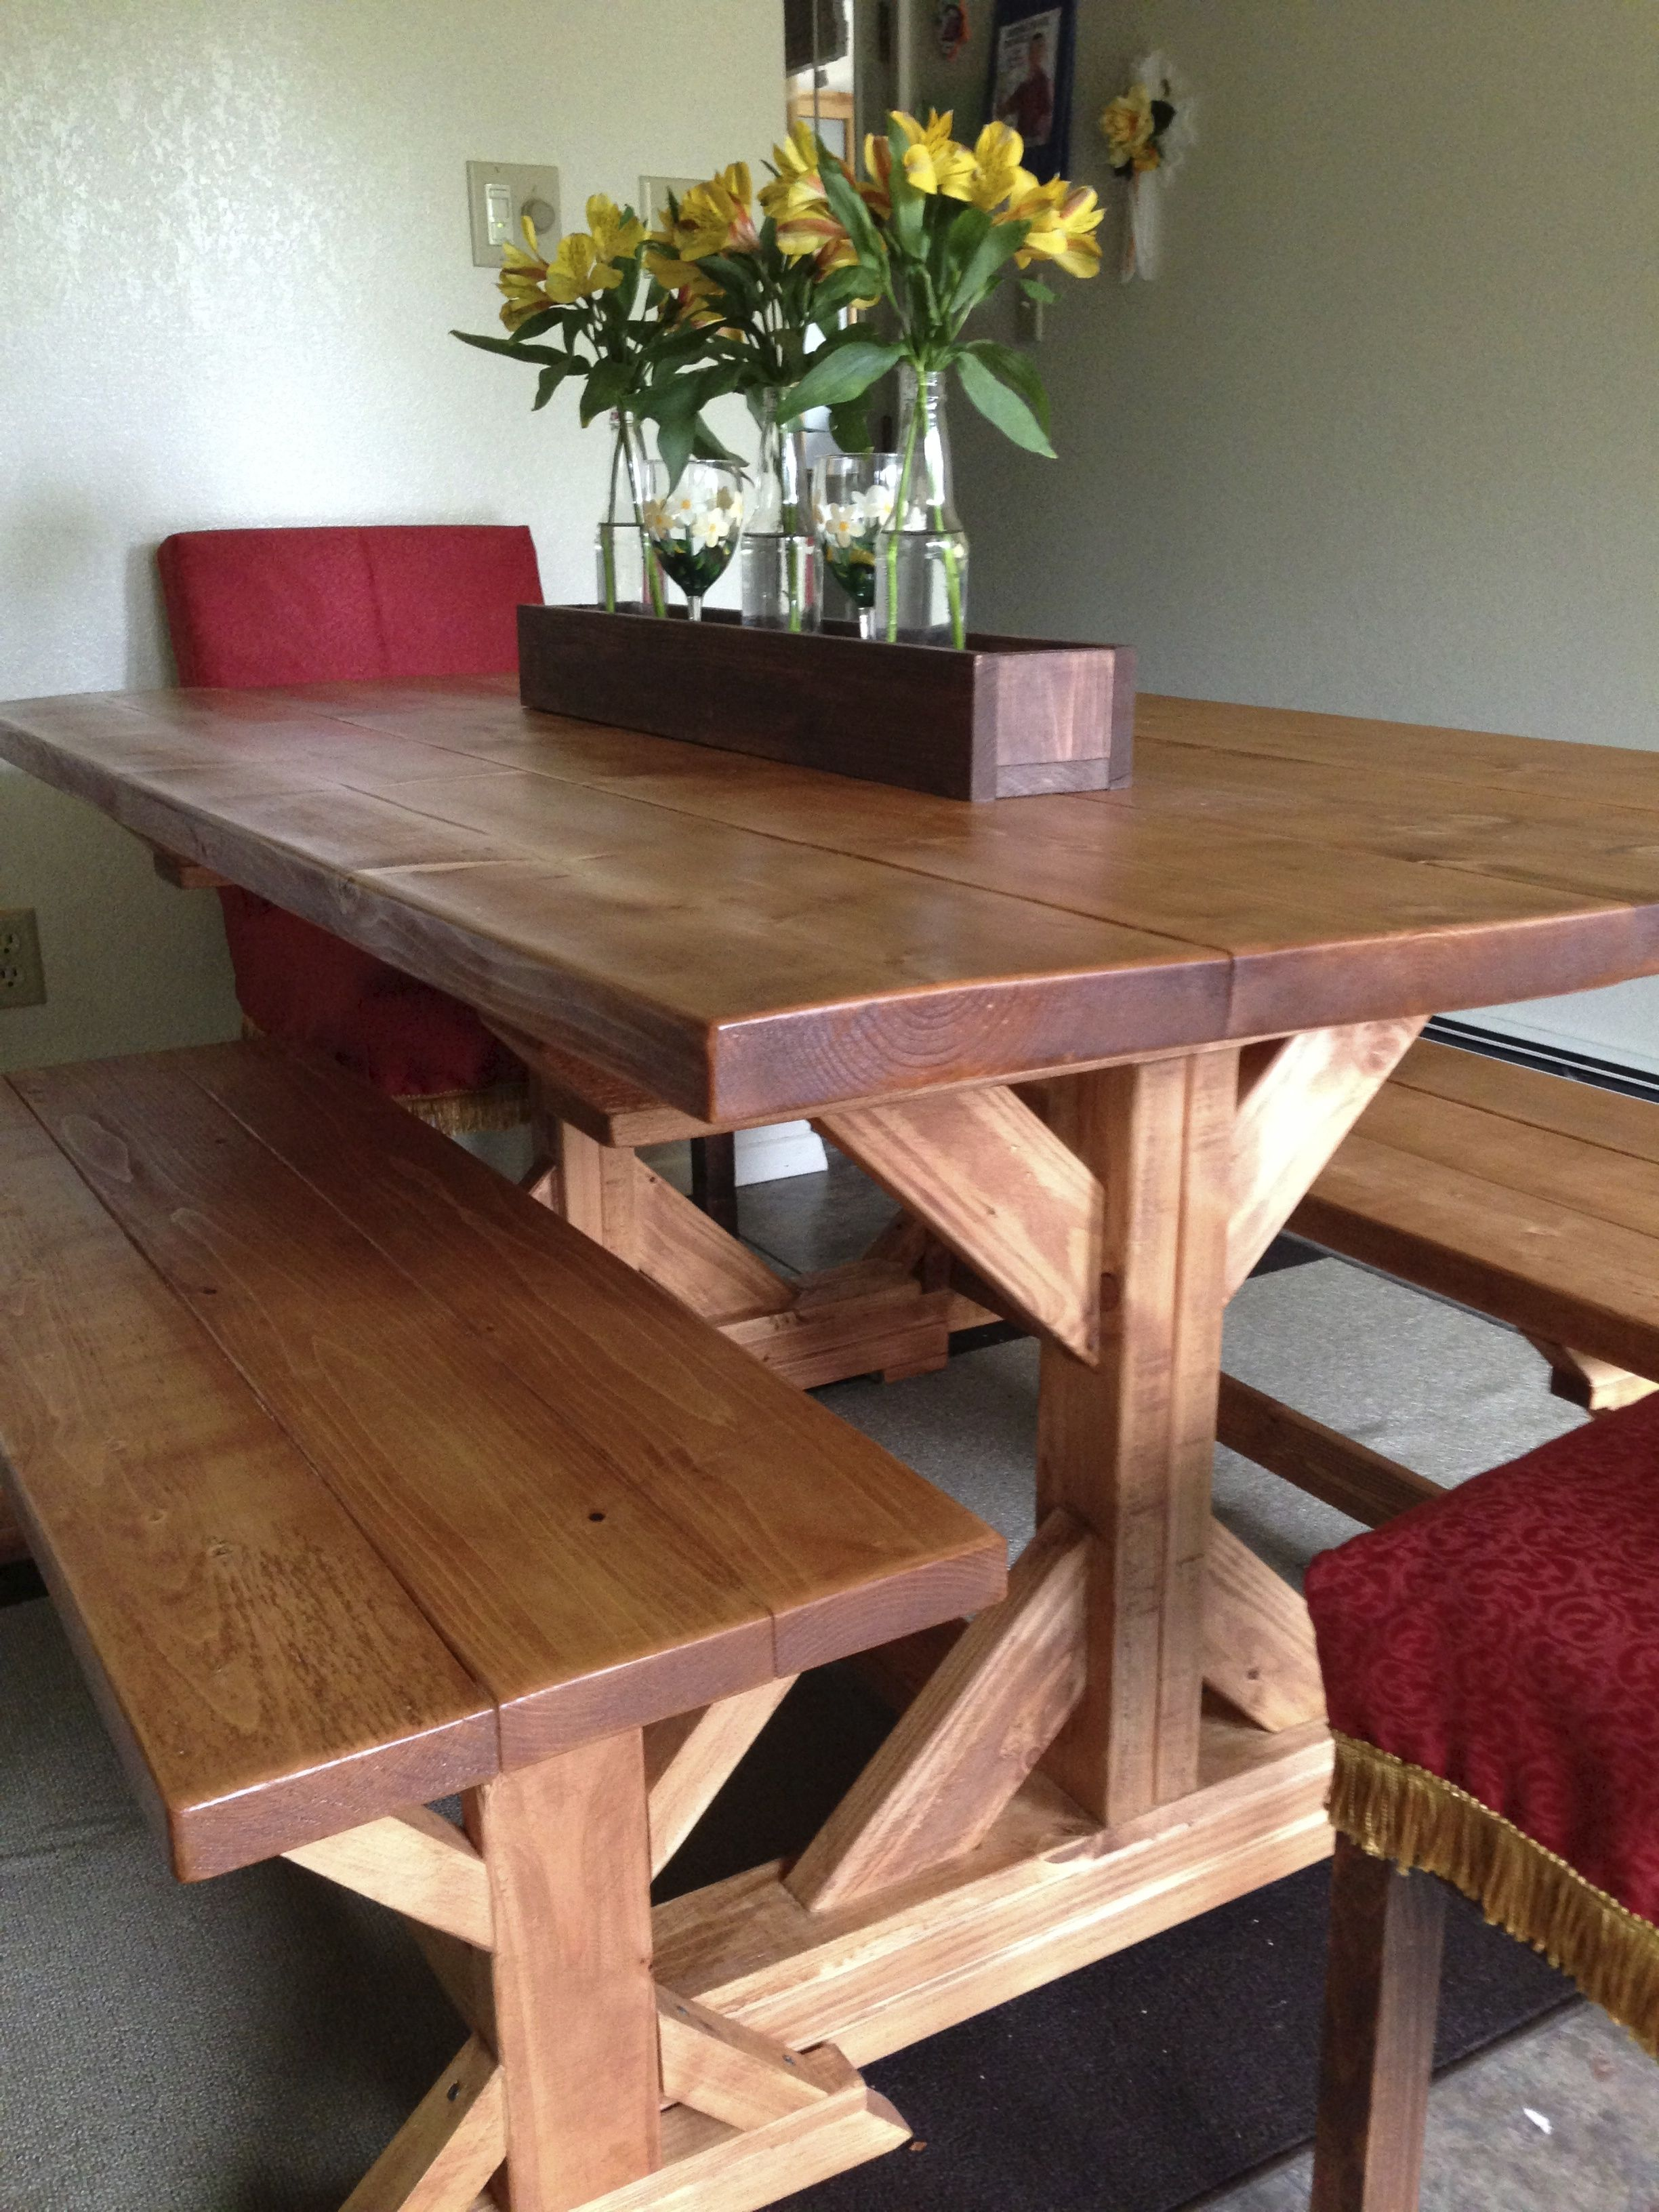 Fancy X Farmhouse Table And Benches Plans At Ana White Com With